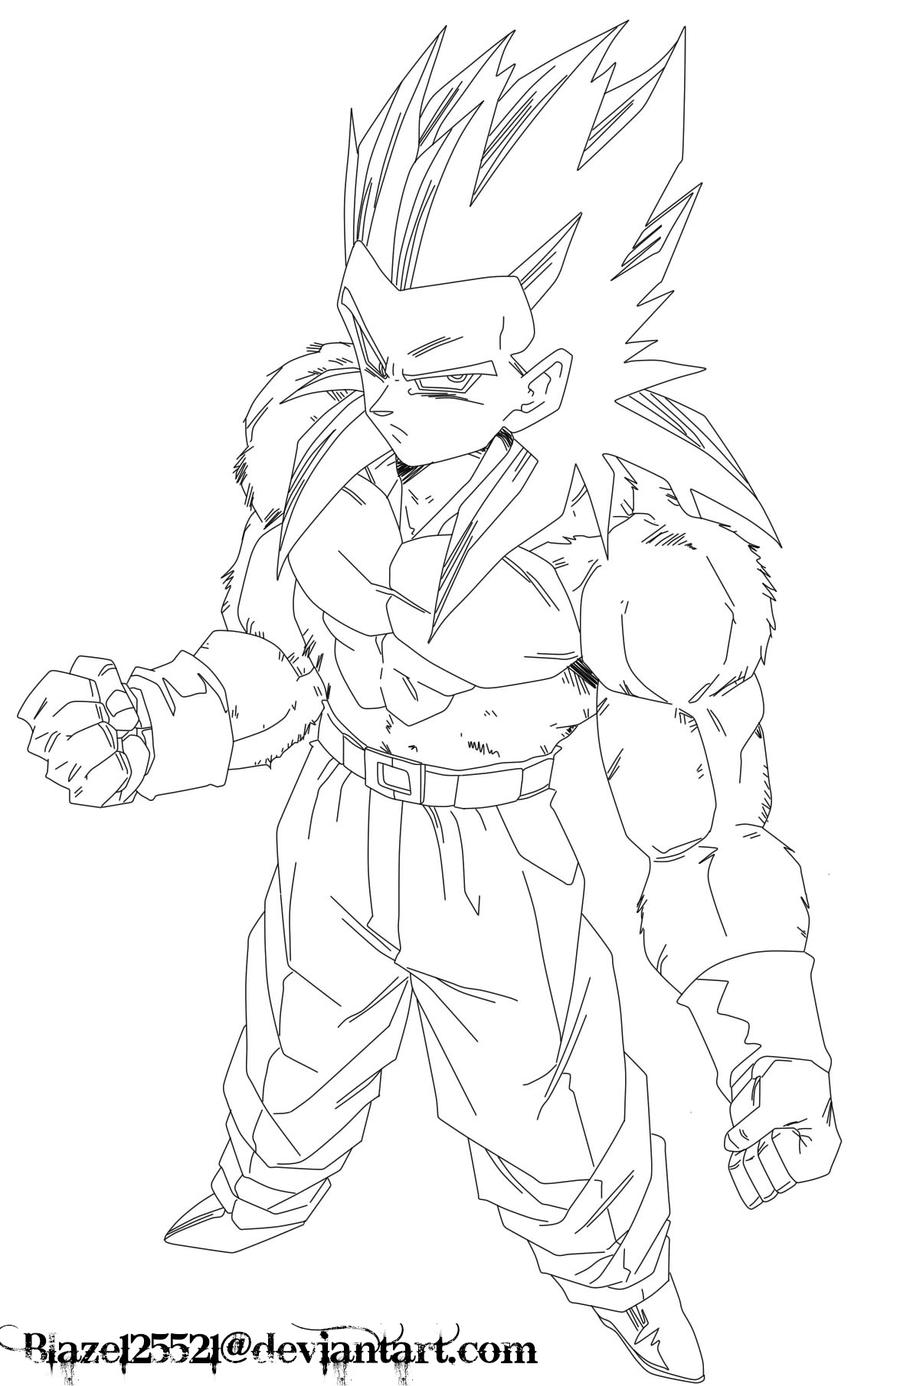 Emejing Super Saiyan Gohan Coloring Pages Pictures - Coloring 2018 ...